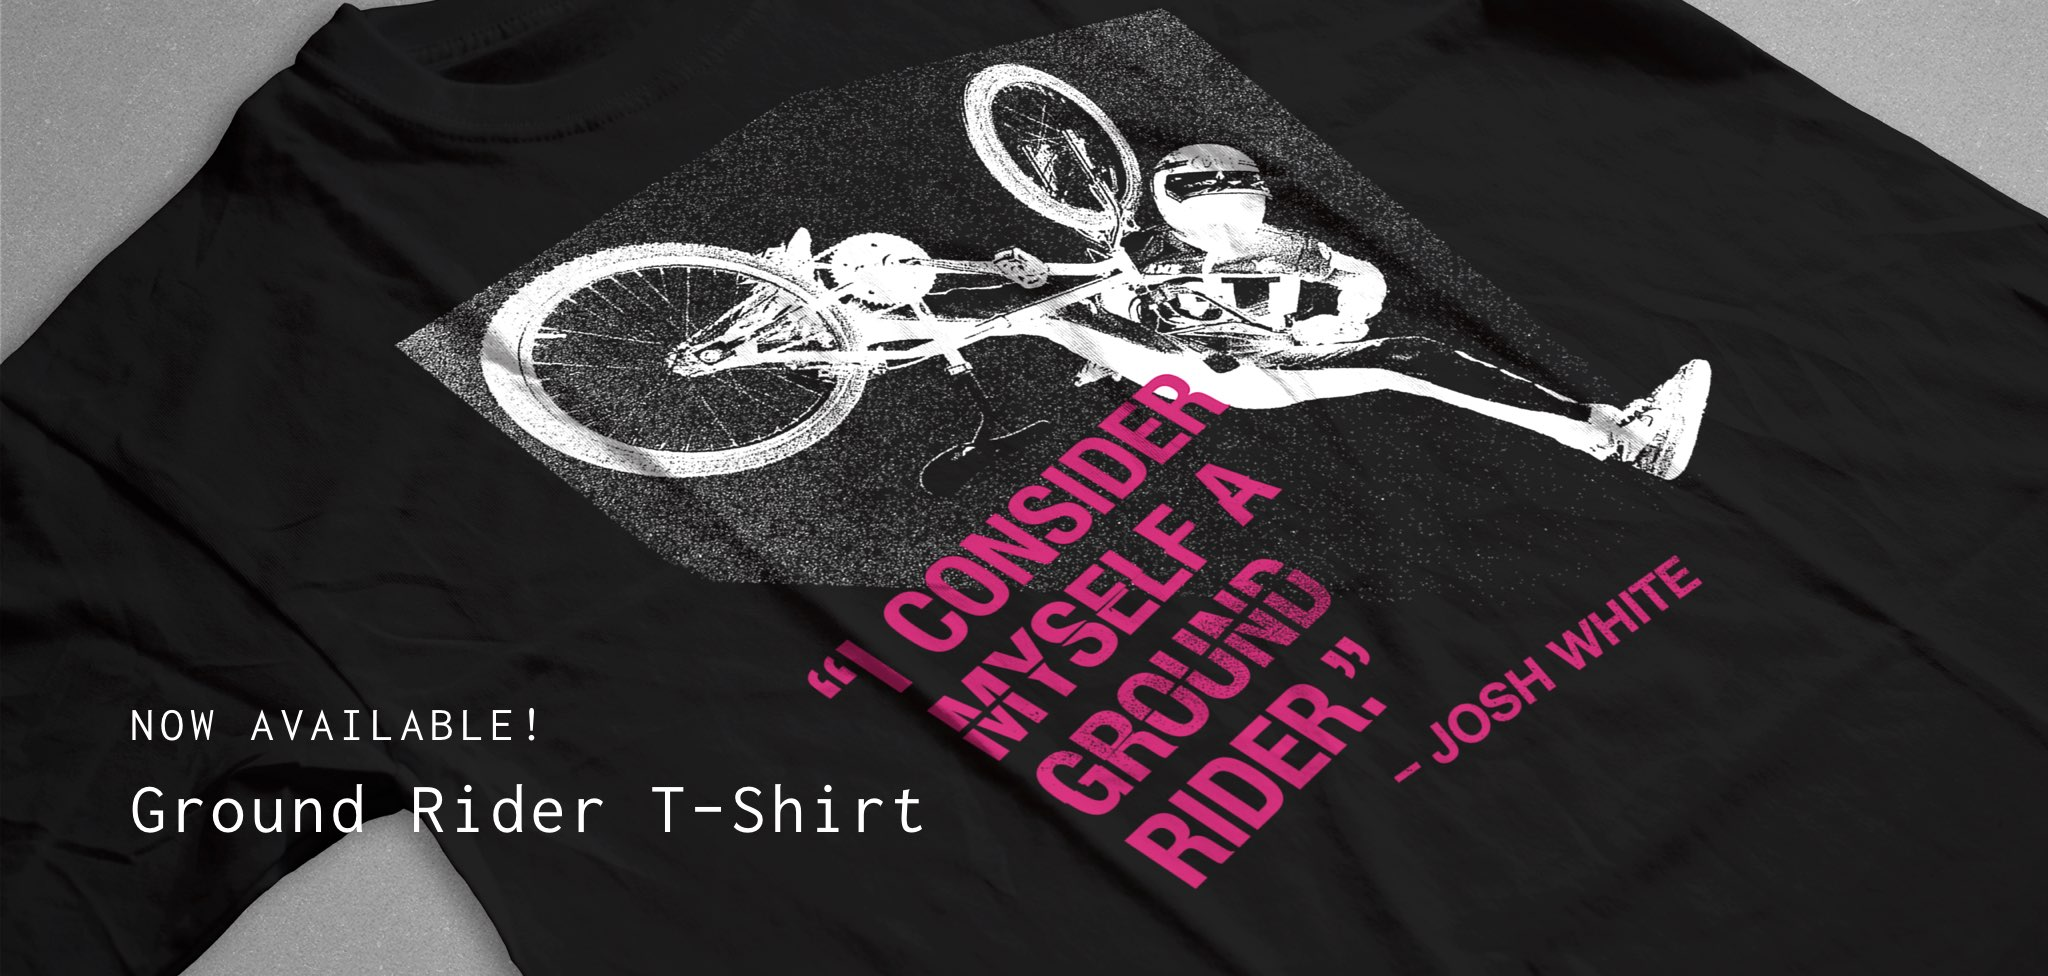 Now Available - Ground Rider T-Shirt